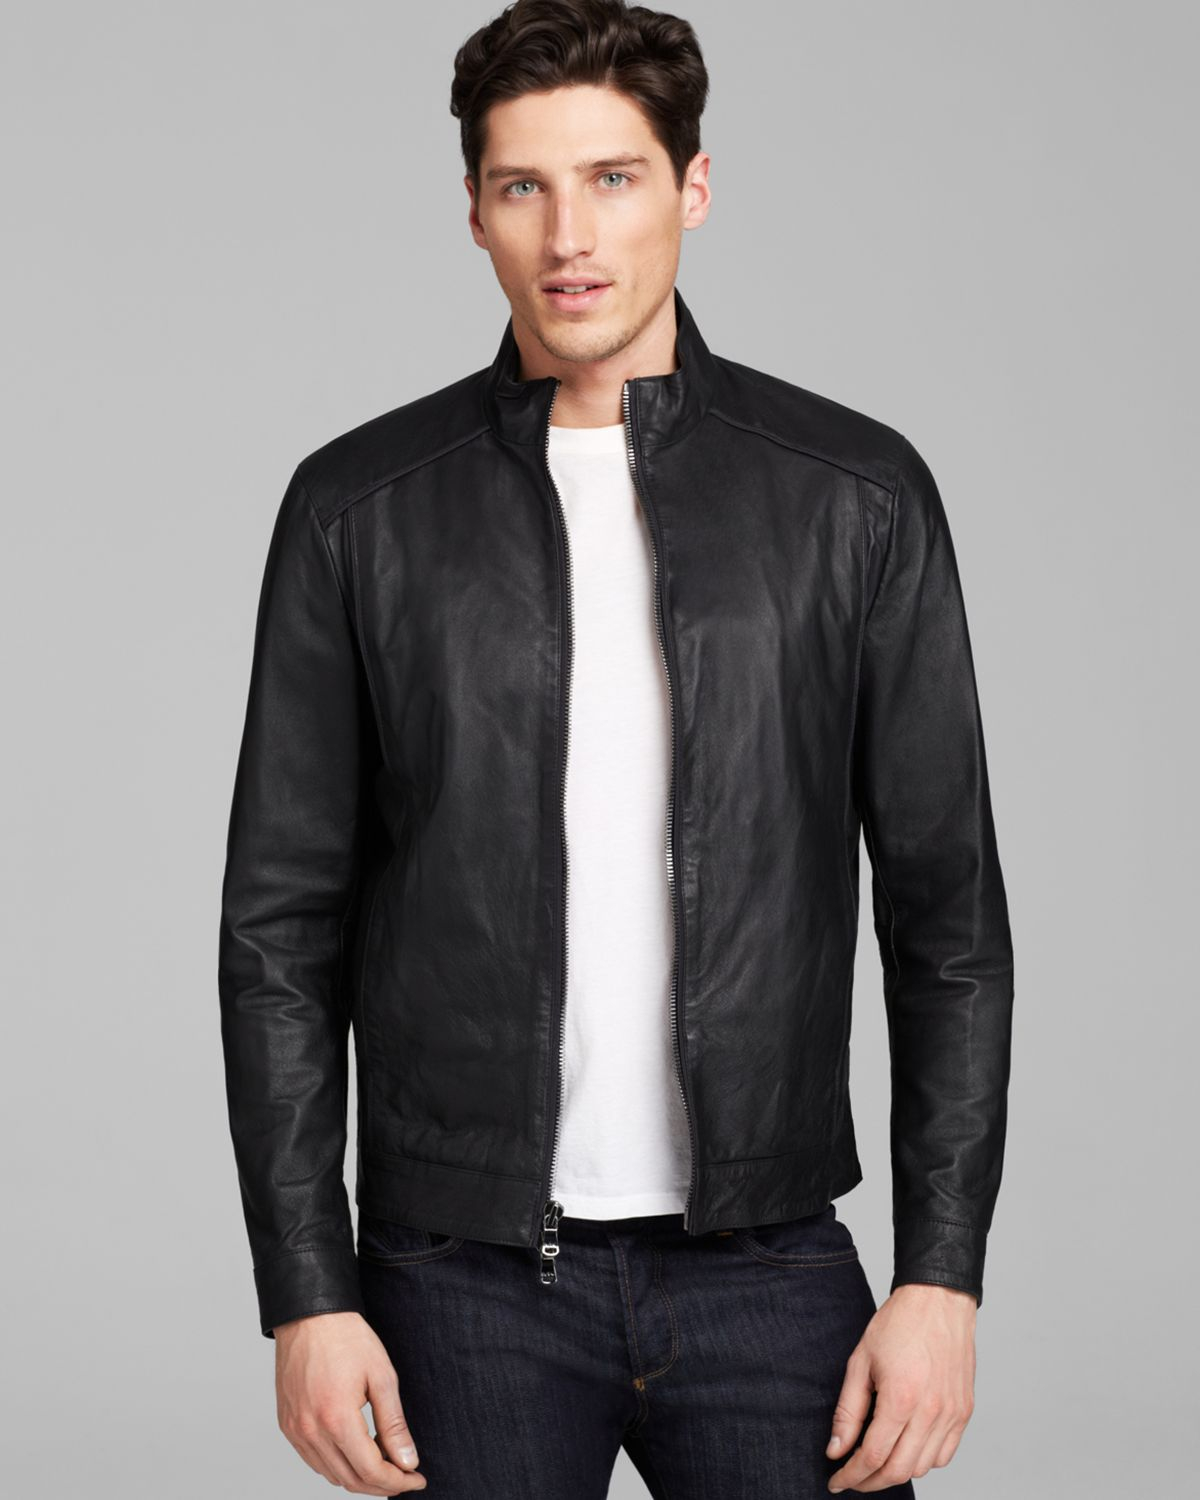 Lyst - Michael Kors Piped Leather Jacket in Black for Men